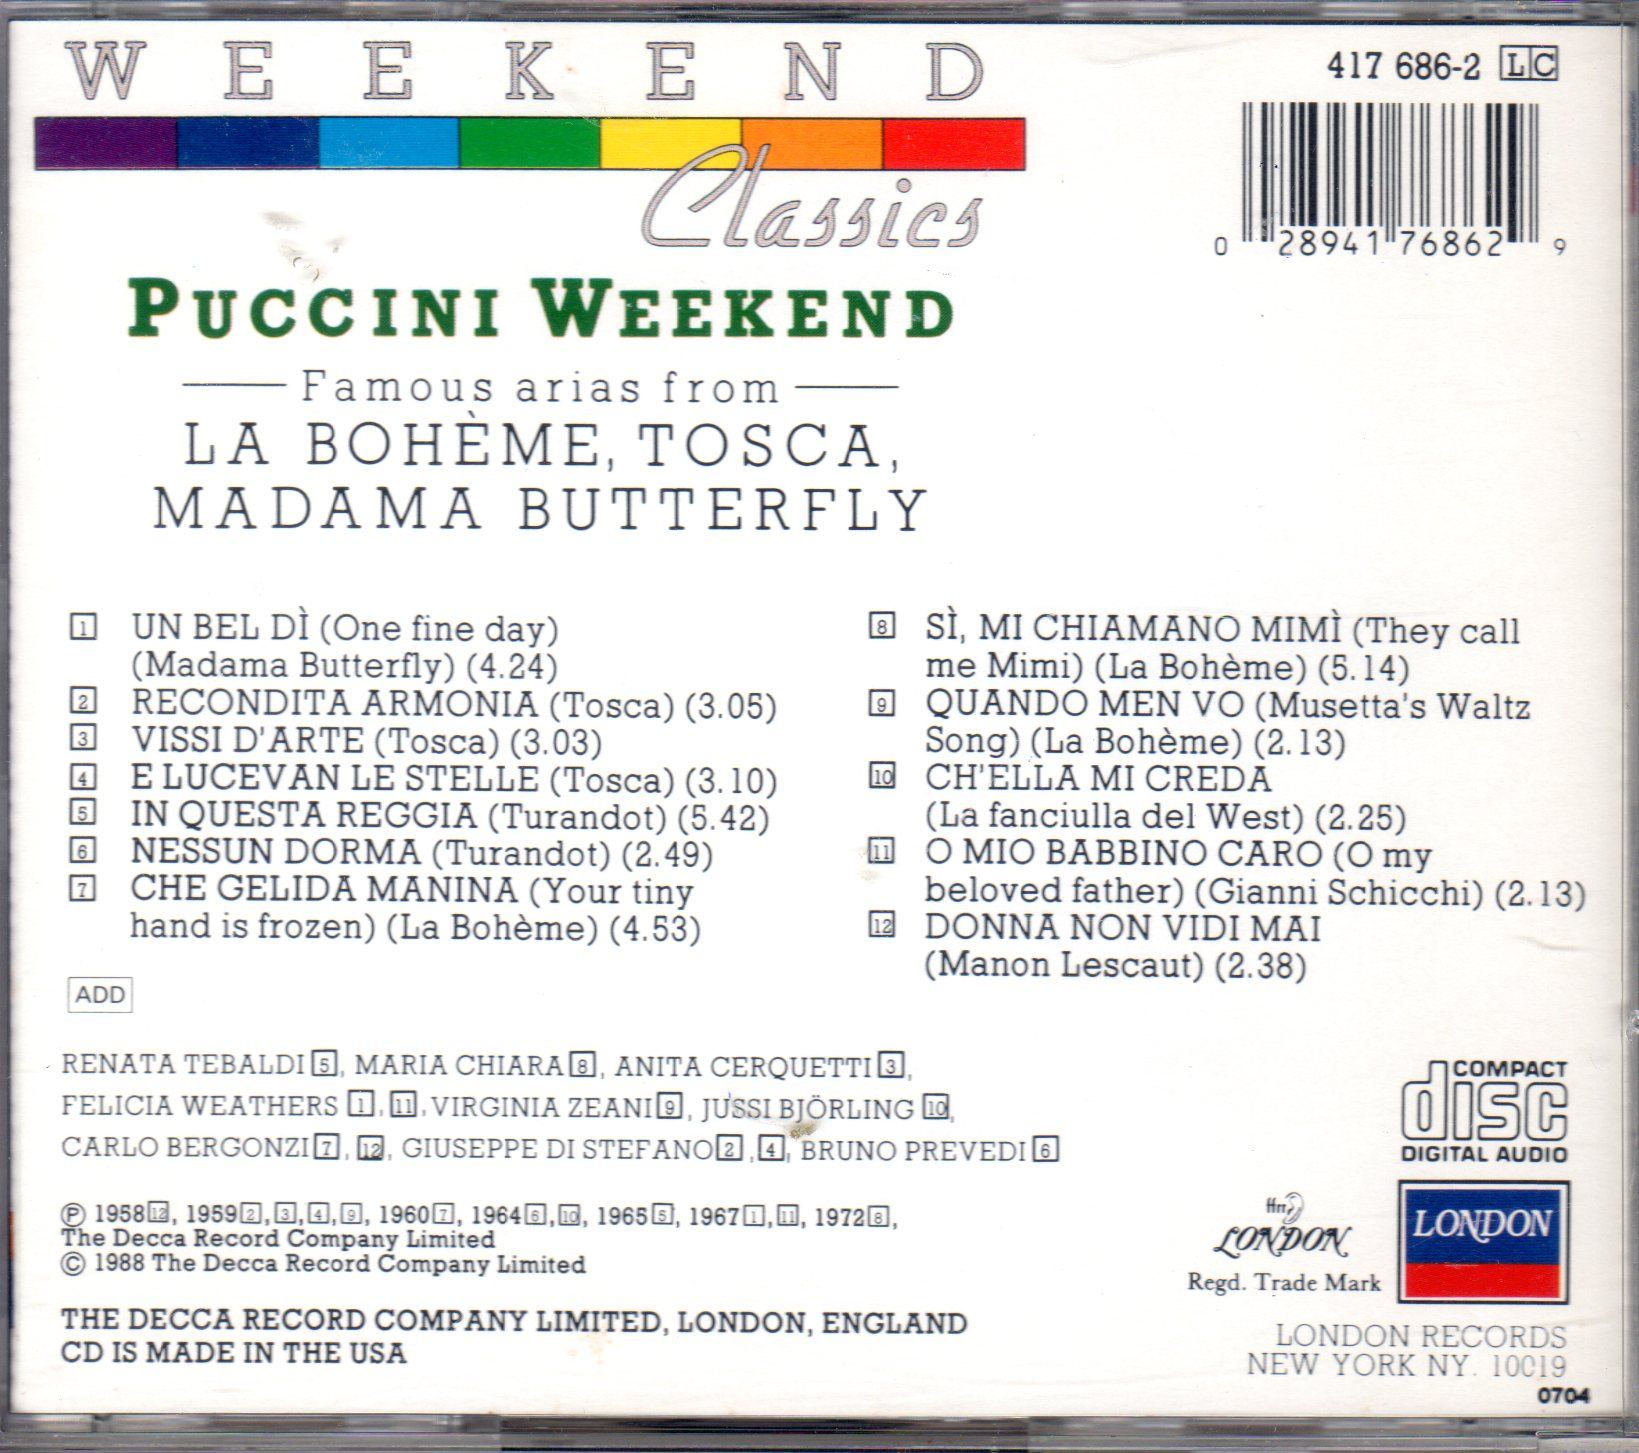 Puccini Weekend - Various opera singers and conductors